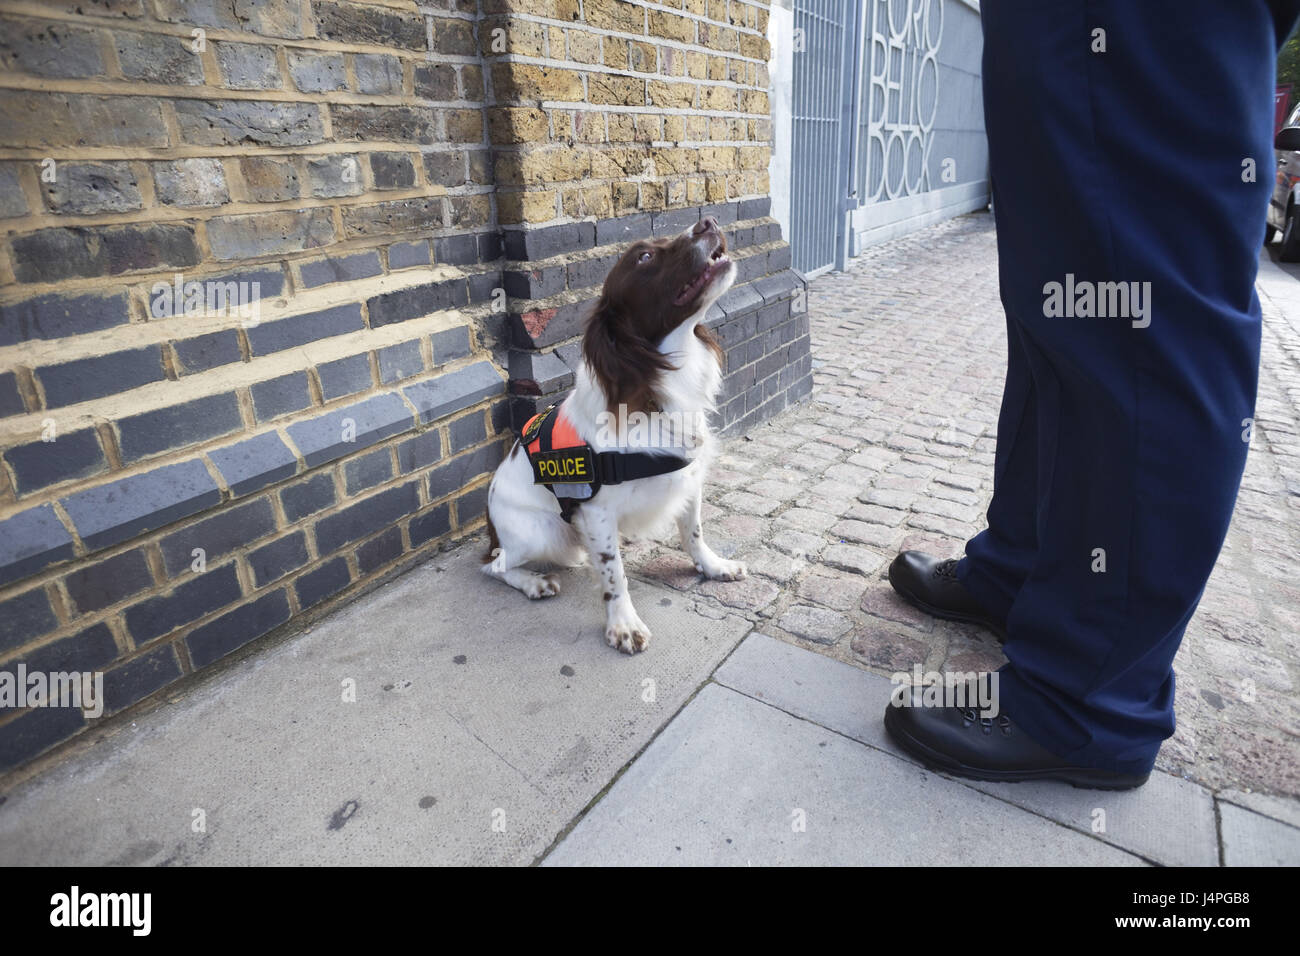 Great Britain, England, London, explosive search dog, man's bones, - Stock Image